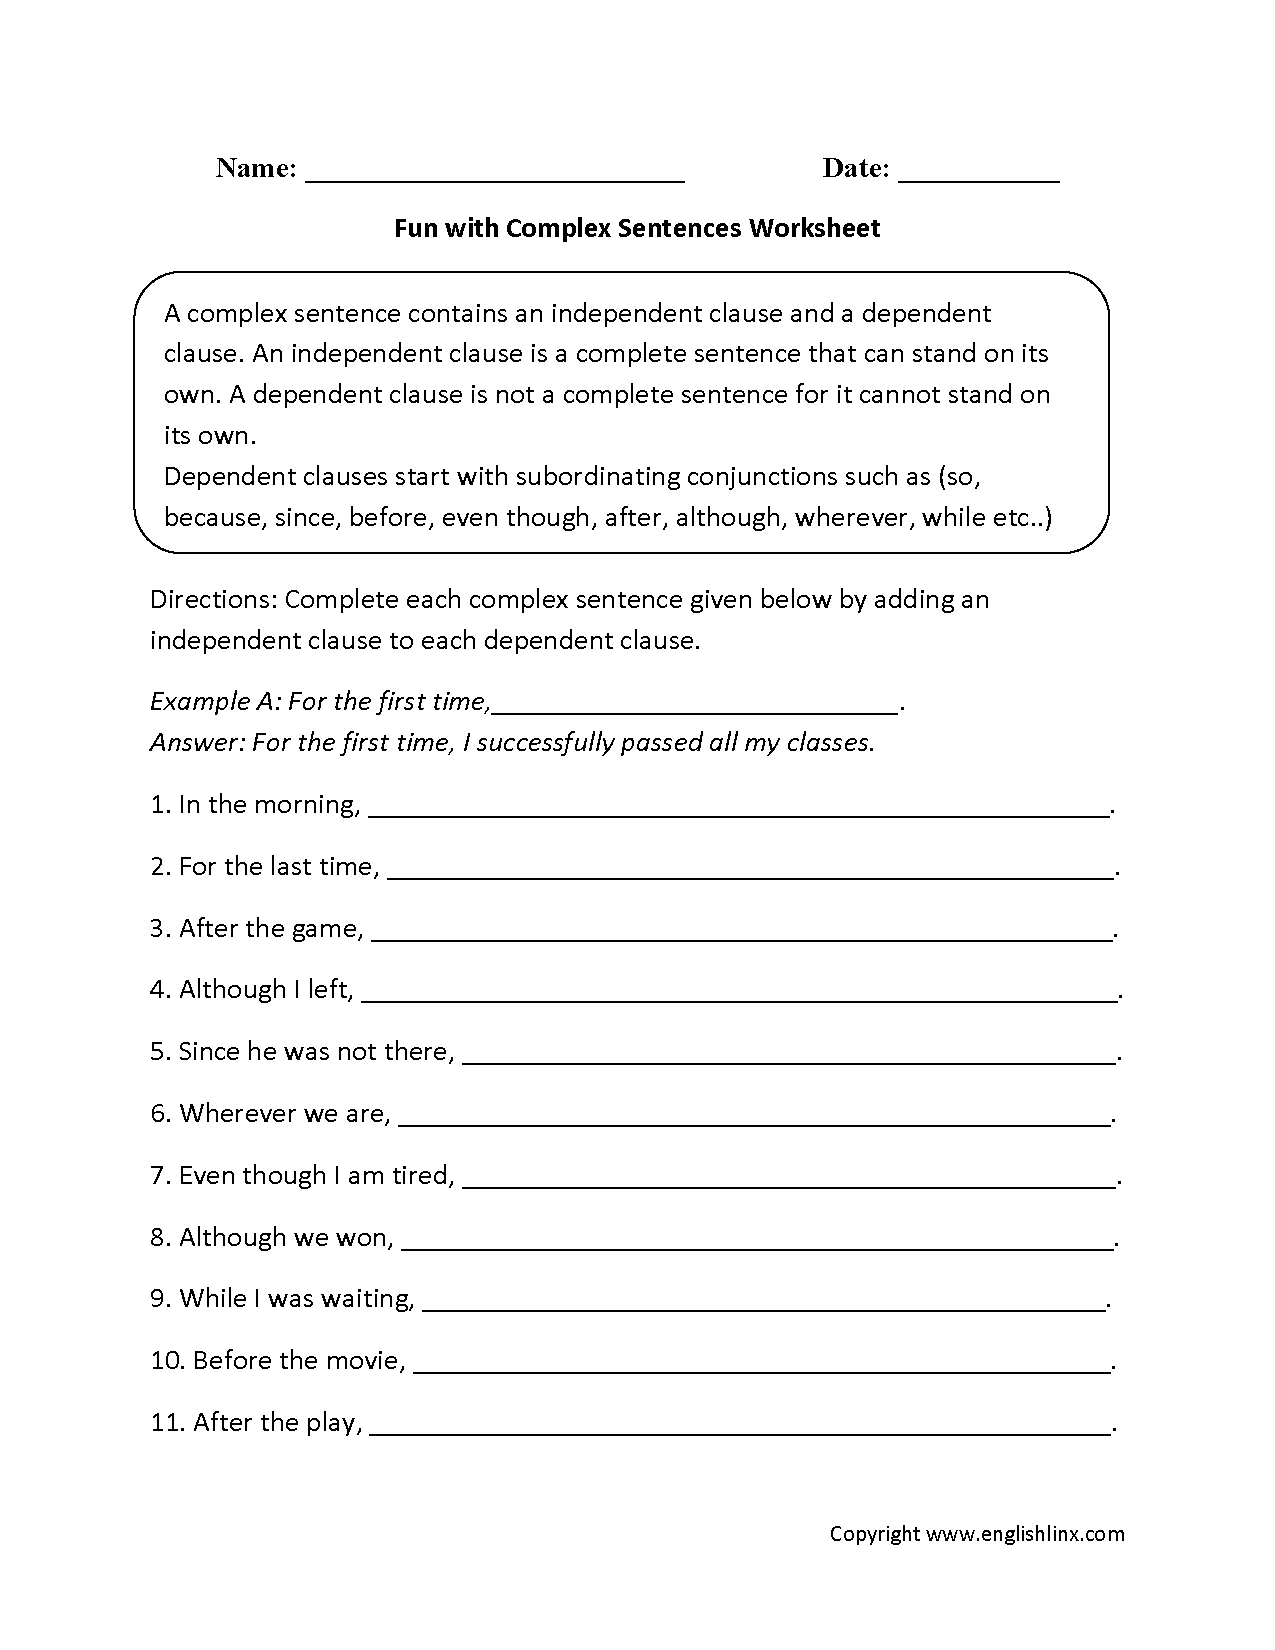 Fun With Complex Sentences Worksheet Simple And Types Of